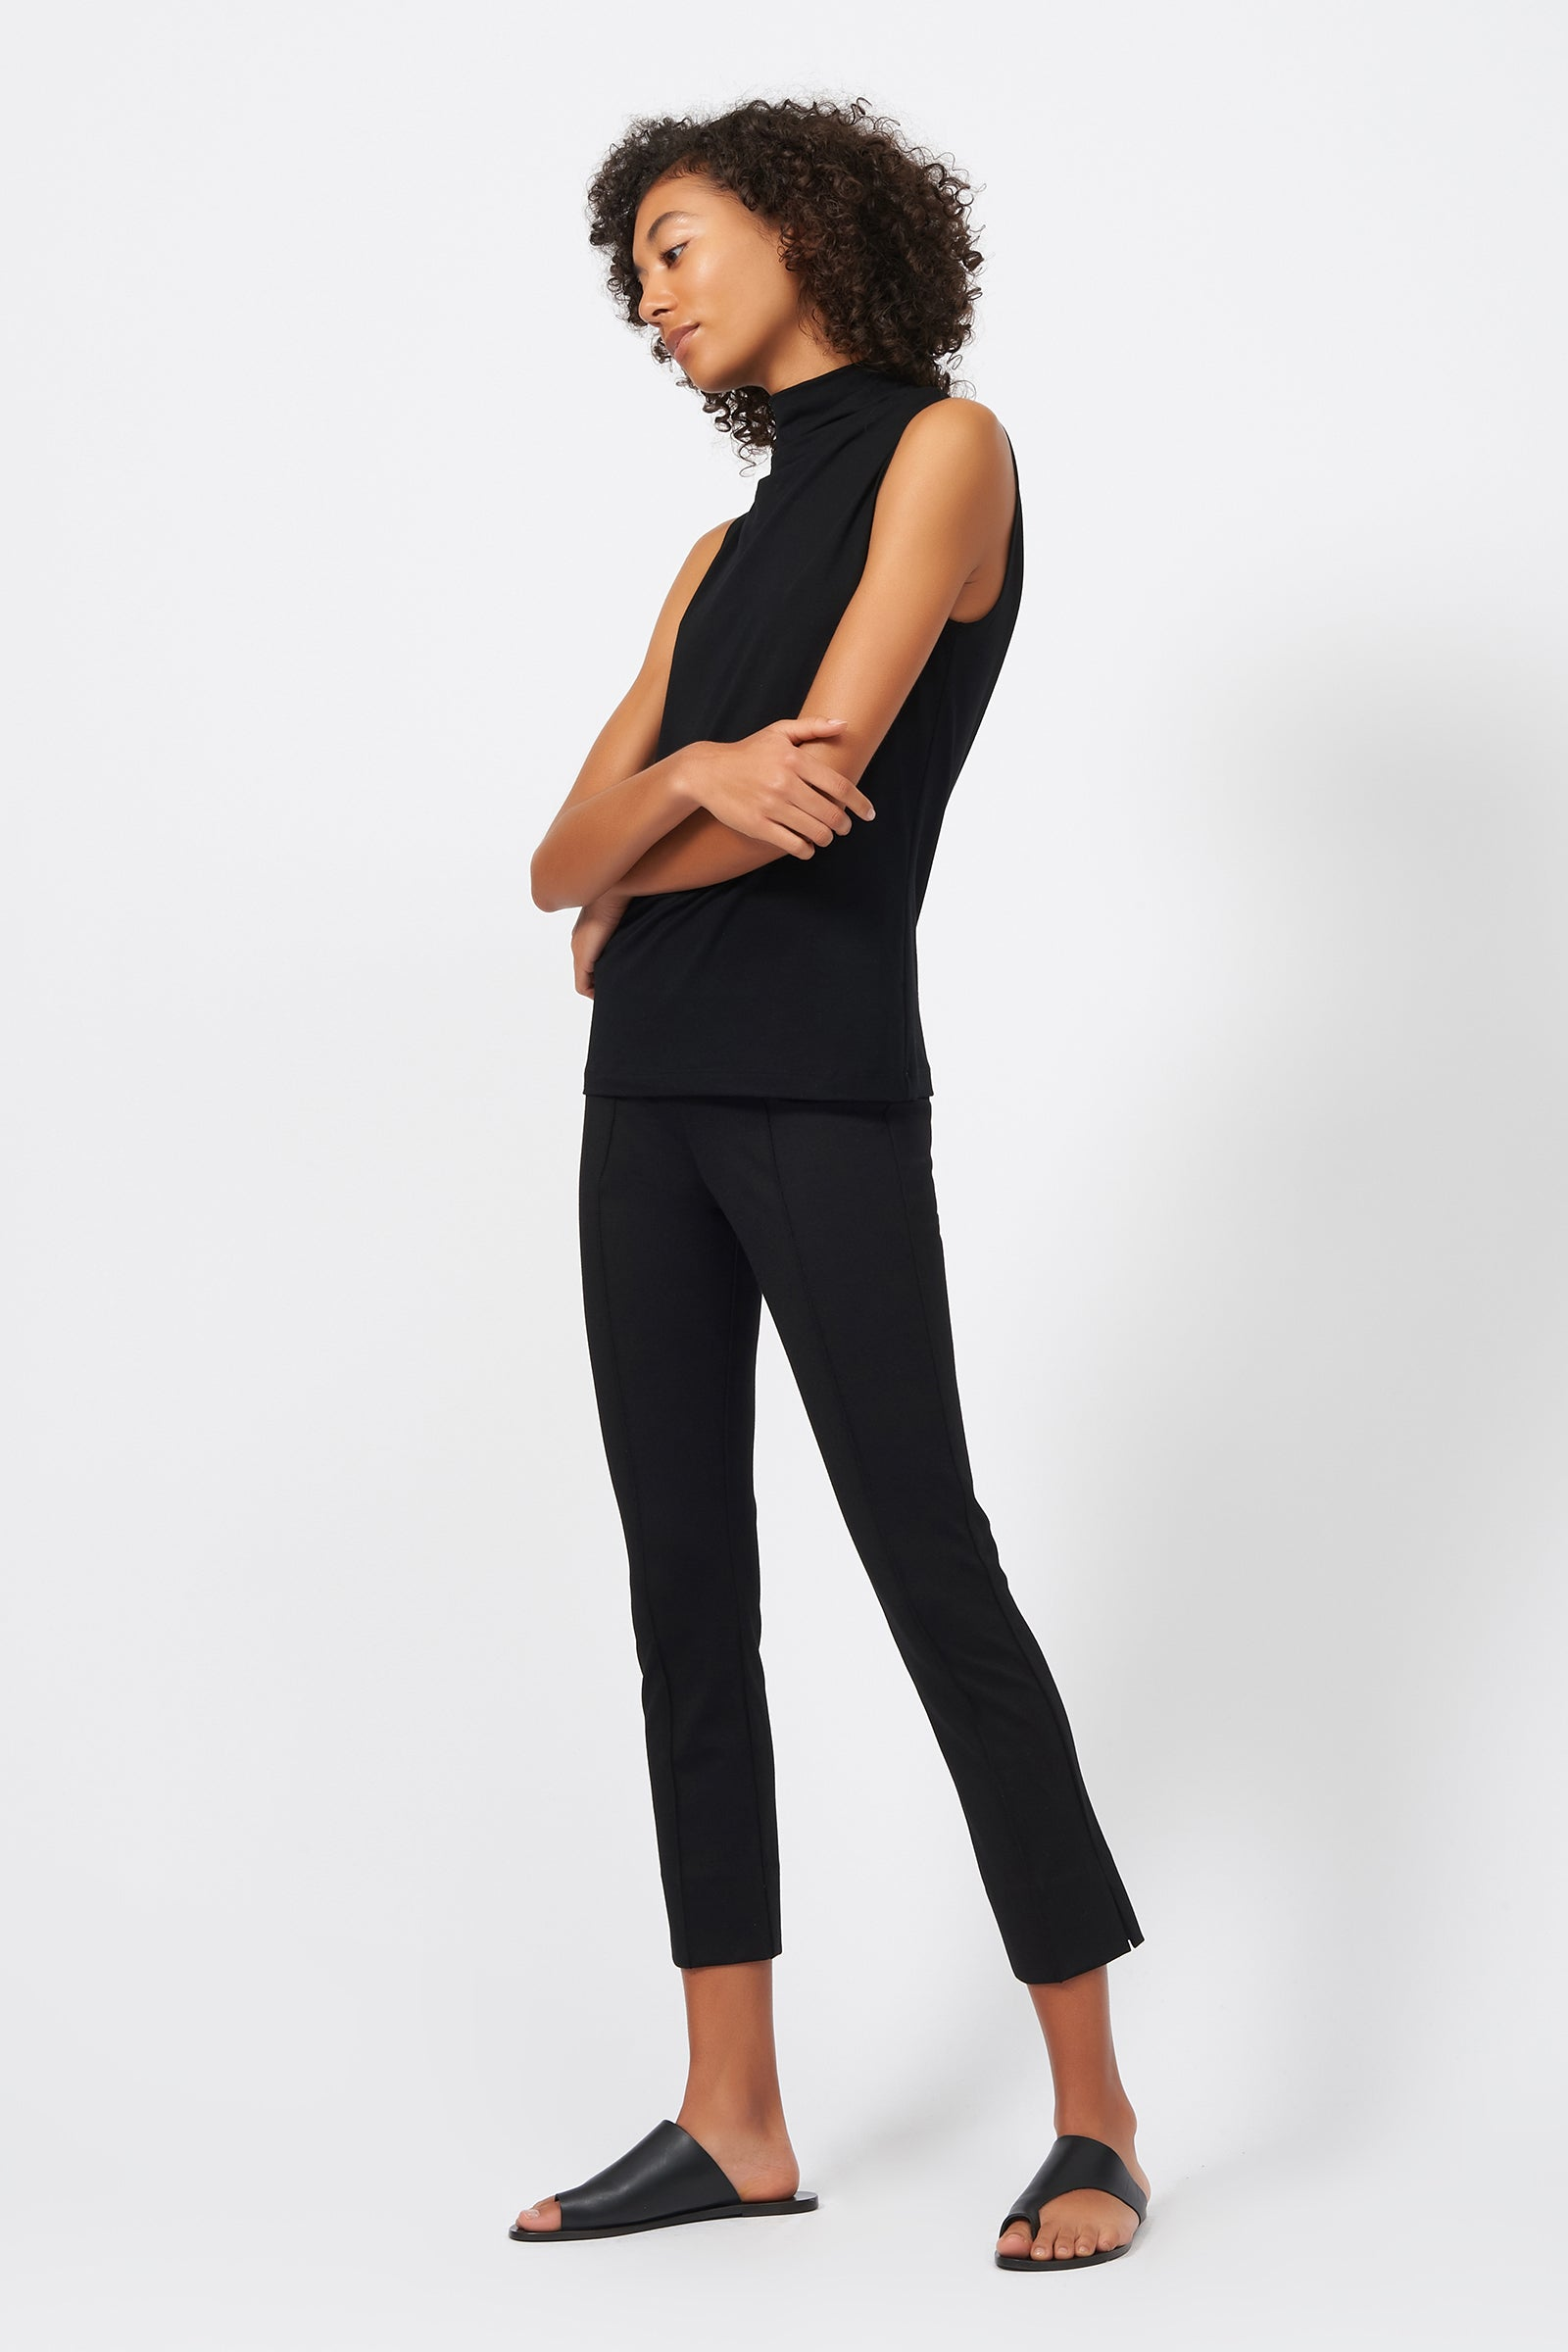 Kal Rieman Pintuck Slit Capri in Black on Model Full Front Side View